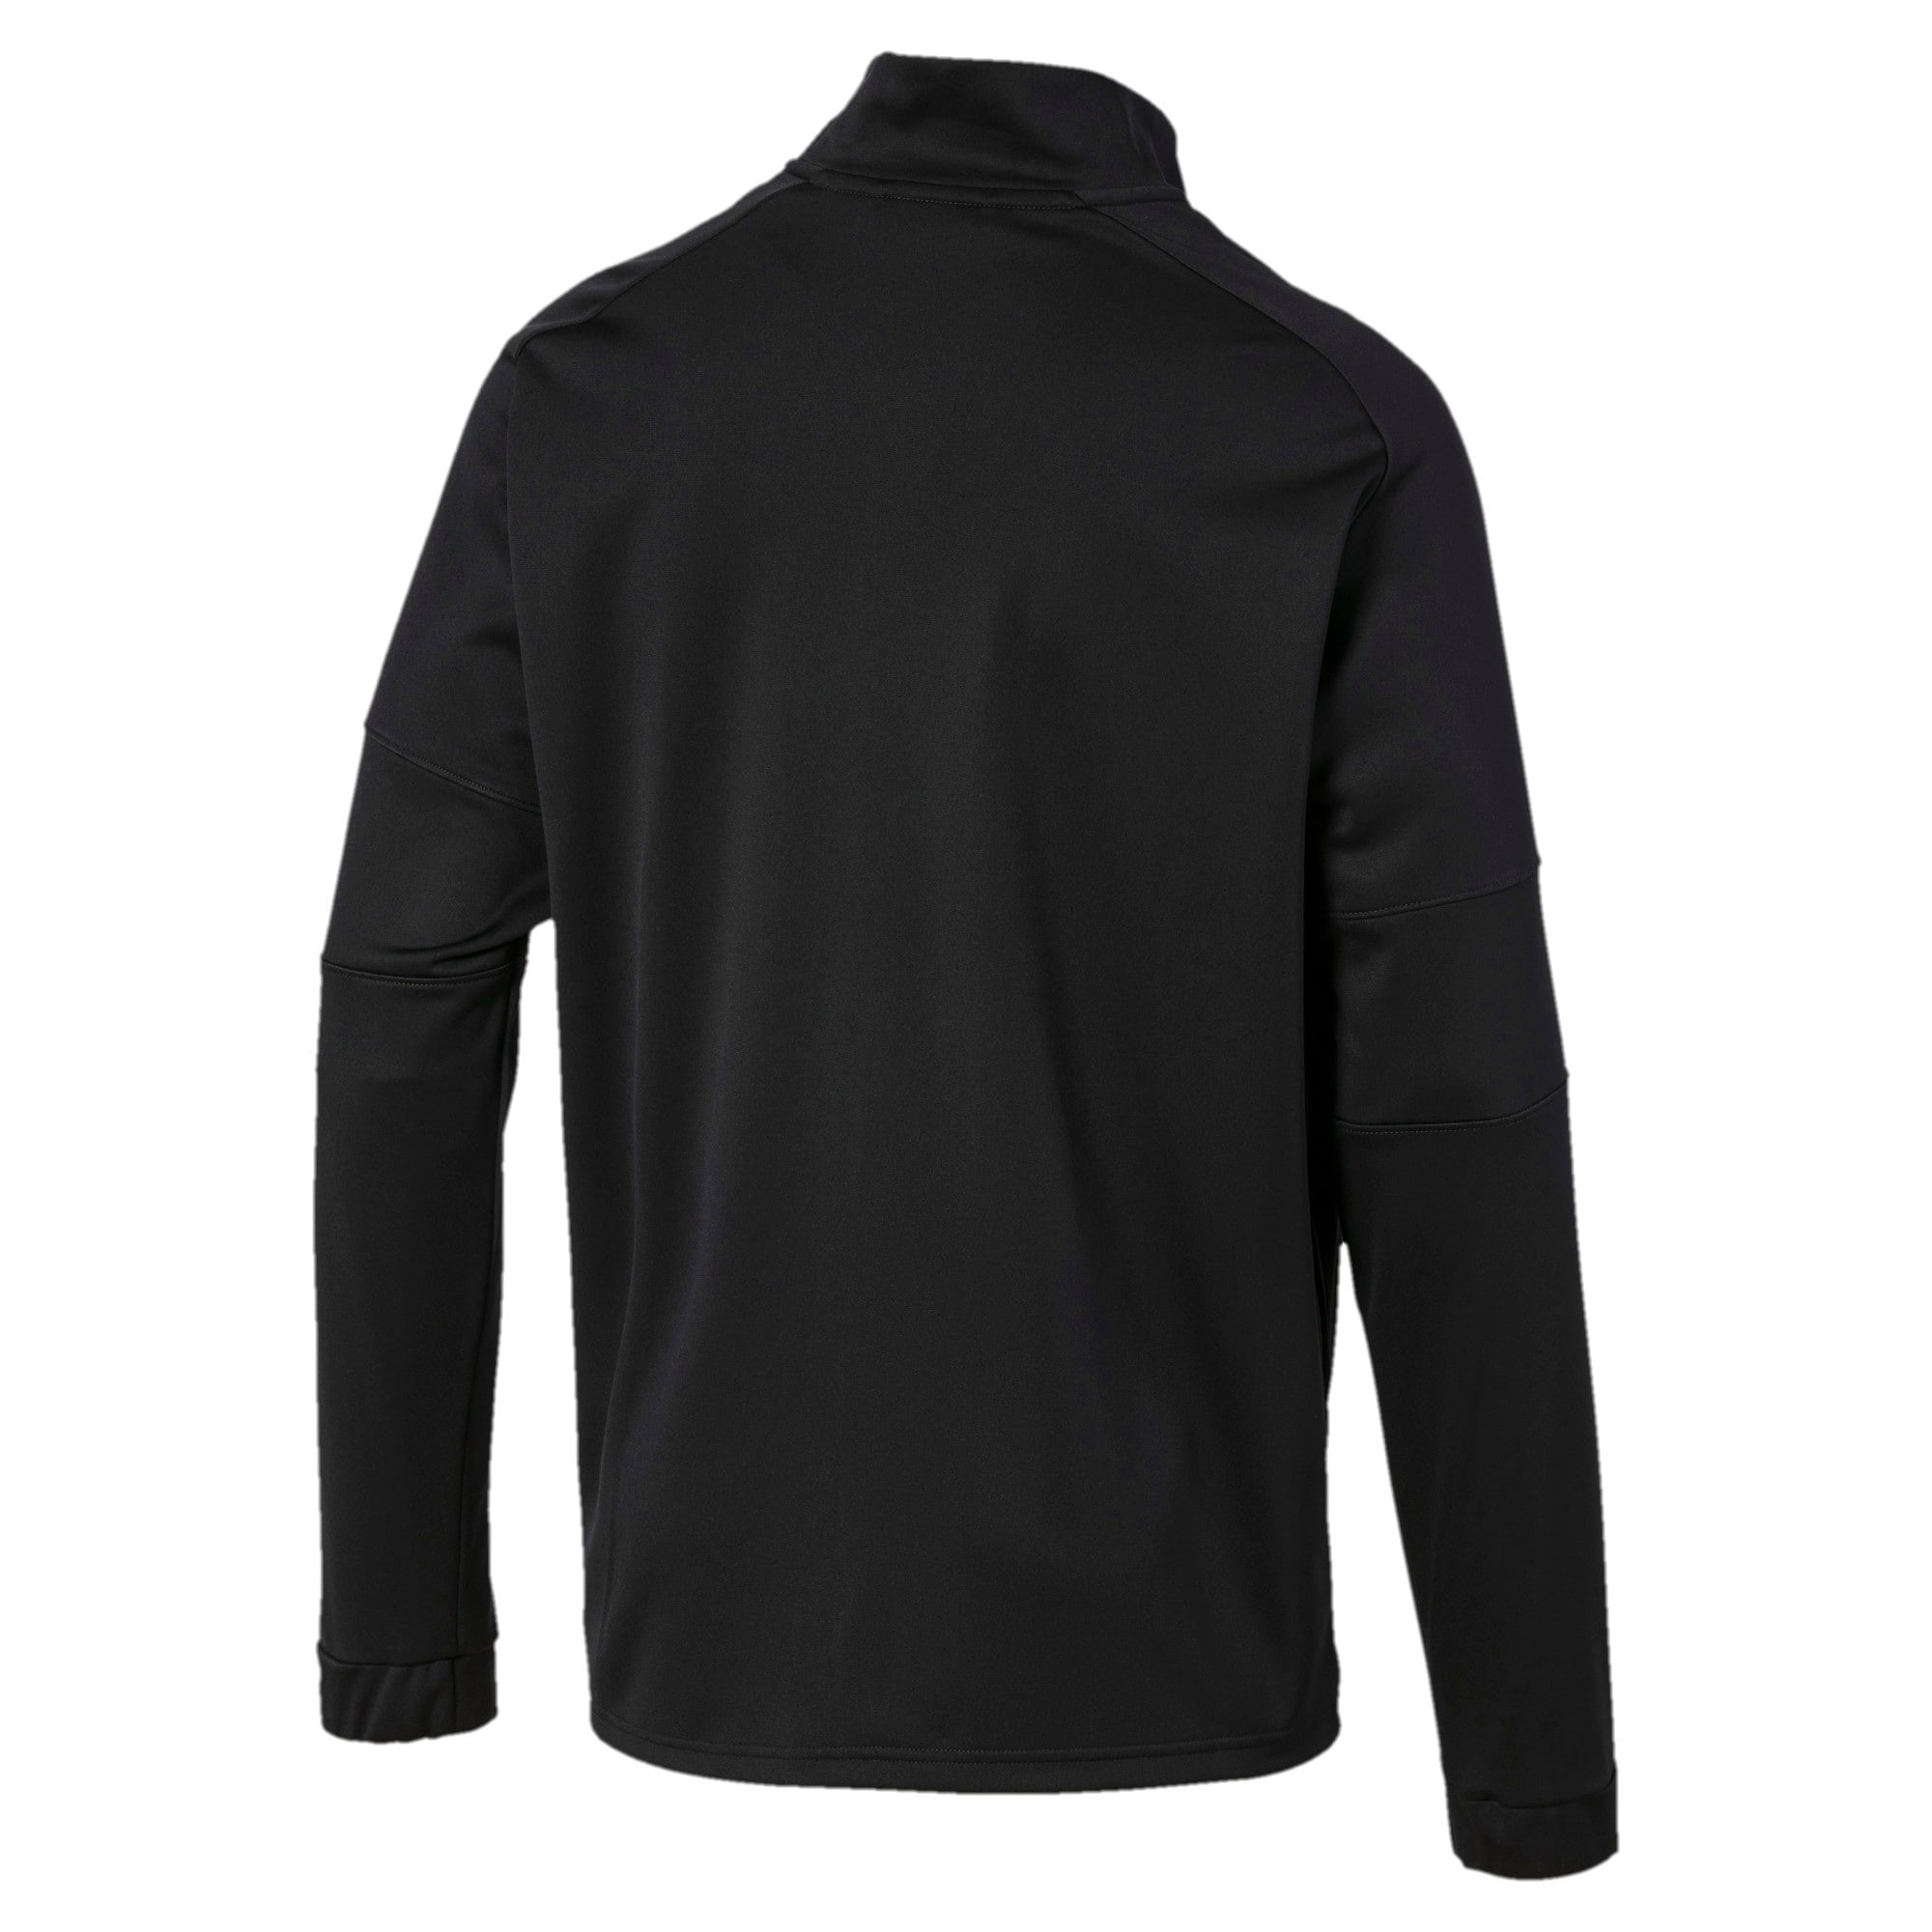 Thumbnail 5 of PUMA Blaster Men's Jacket, Puma Black, medium